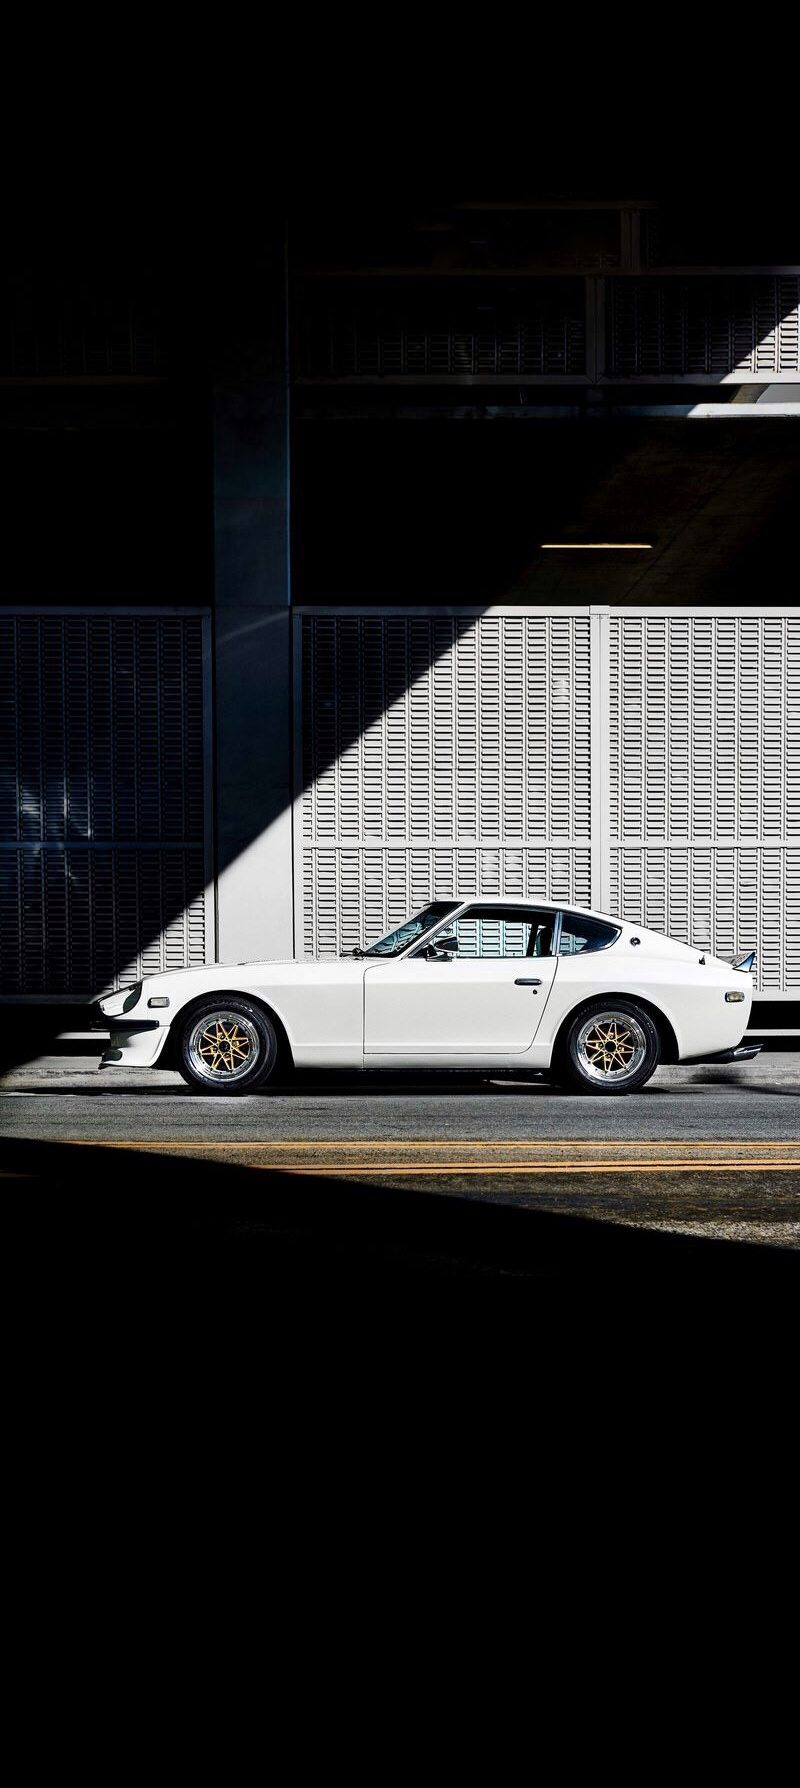 Datsun 260z Datsun Car Wallpapers Dream Cars